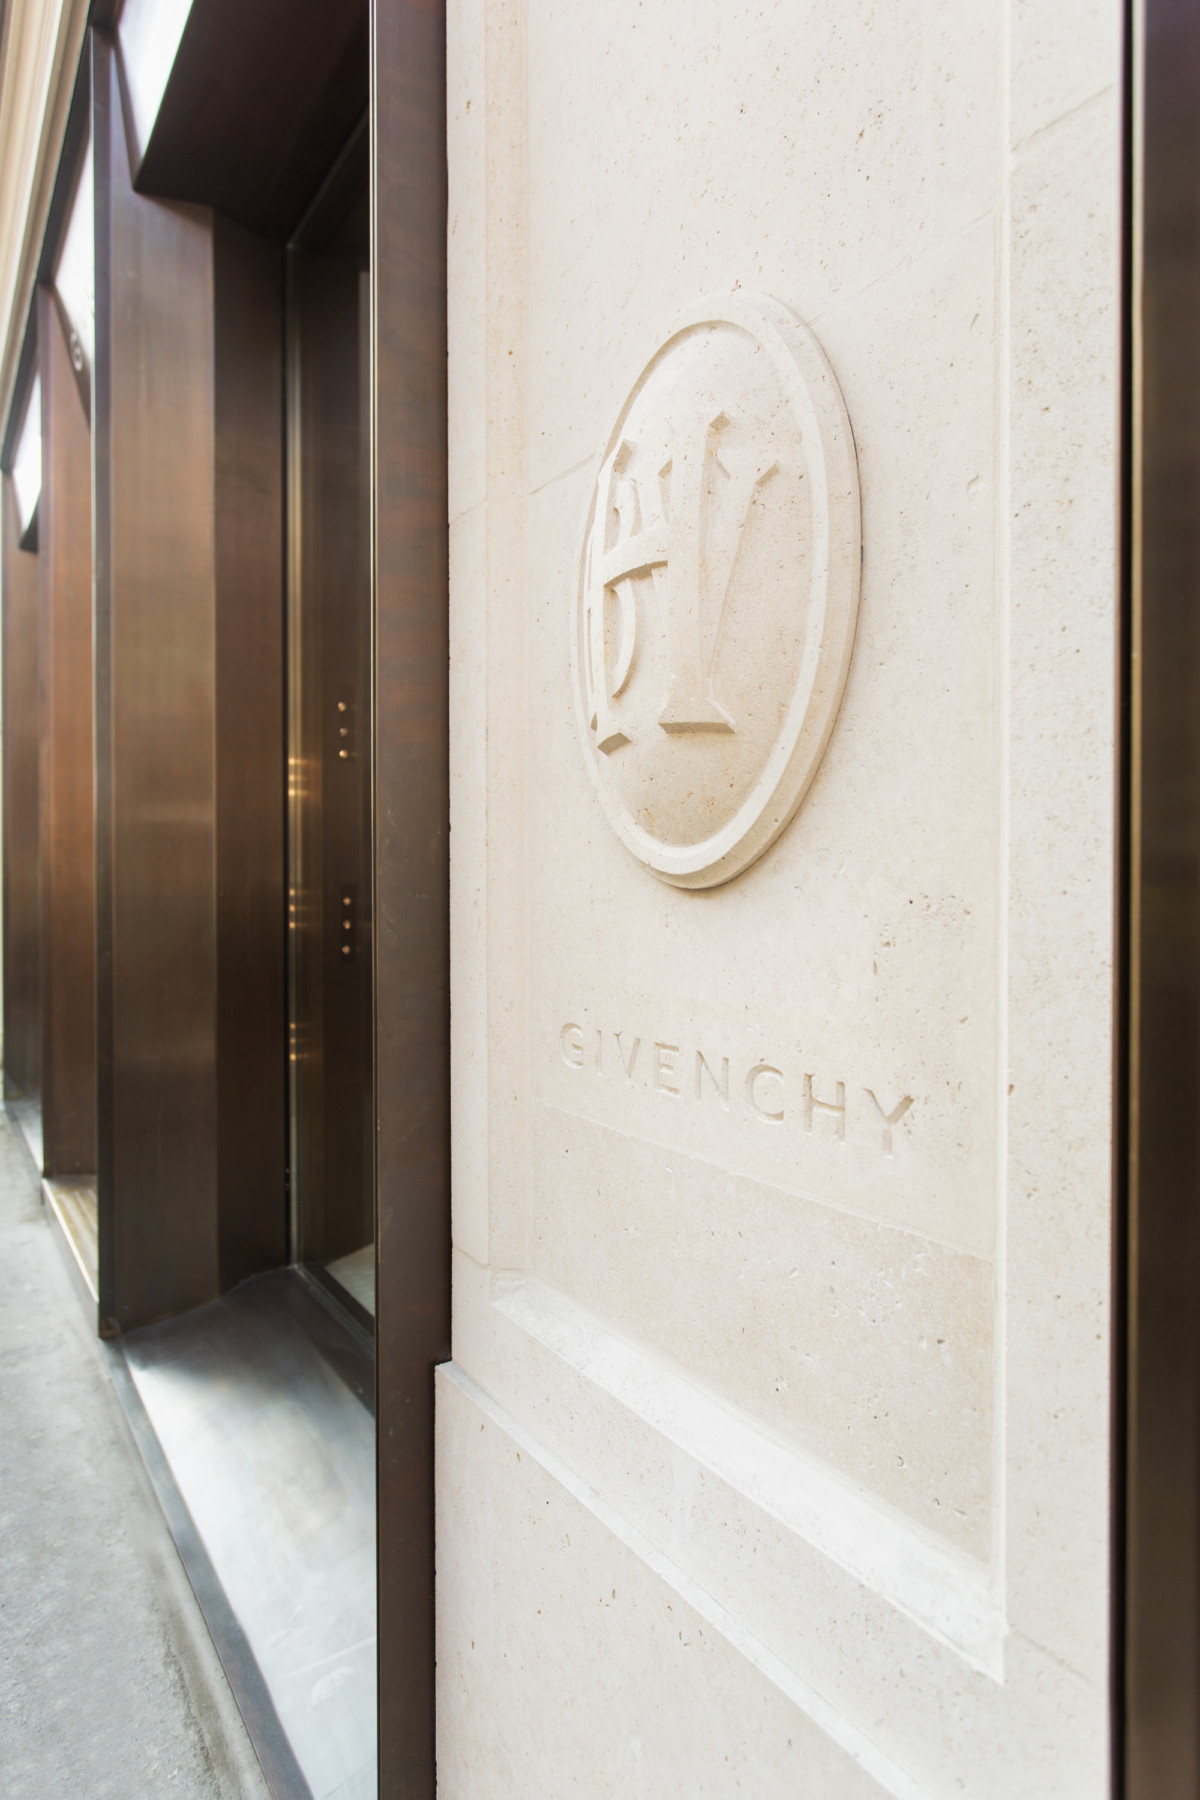 Jamie-fobert-architect-paris-bronze-rue-des-archives-givenchy-bhv